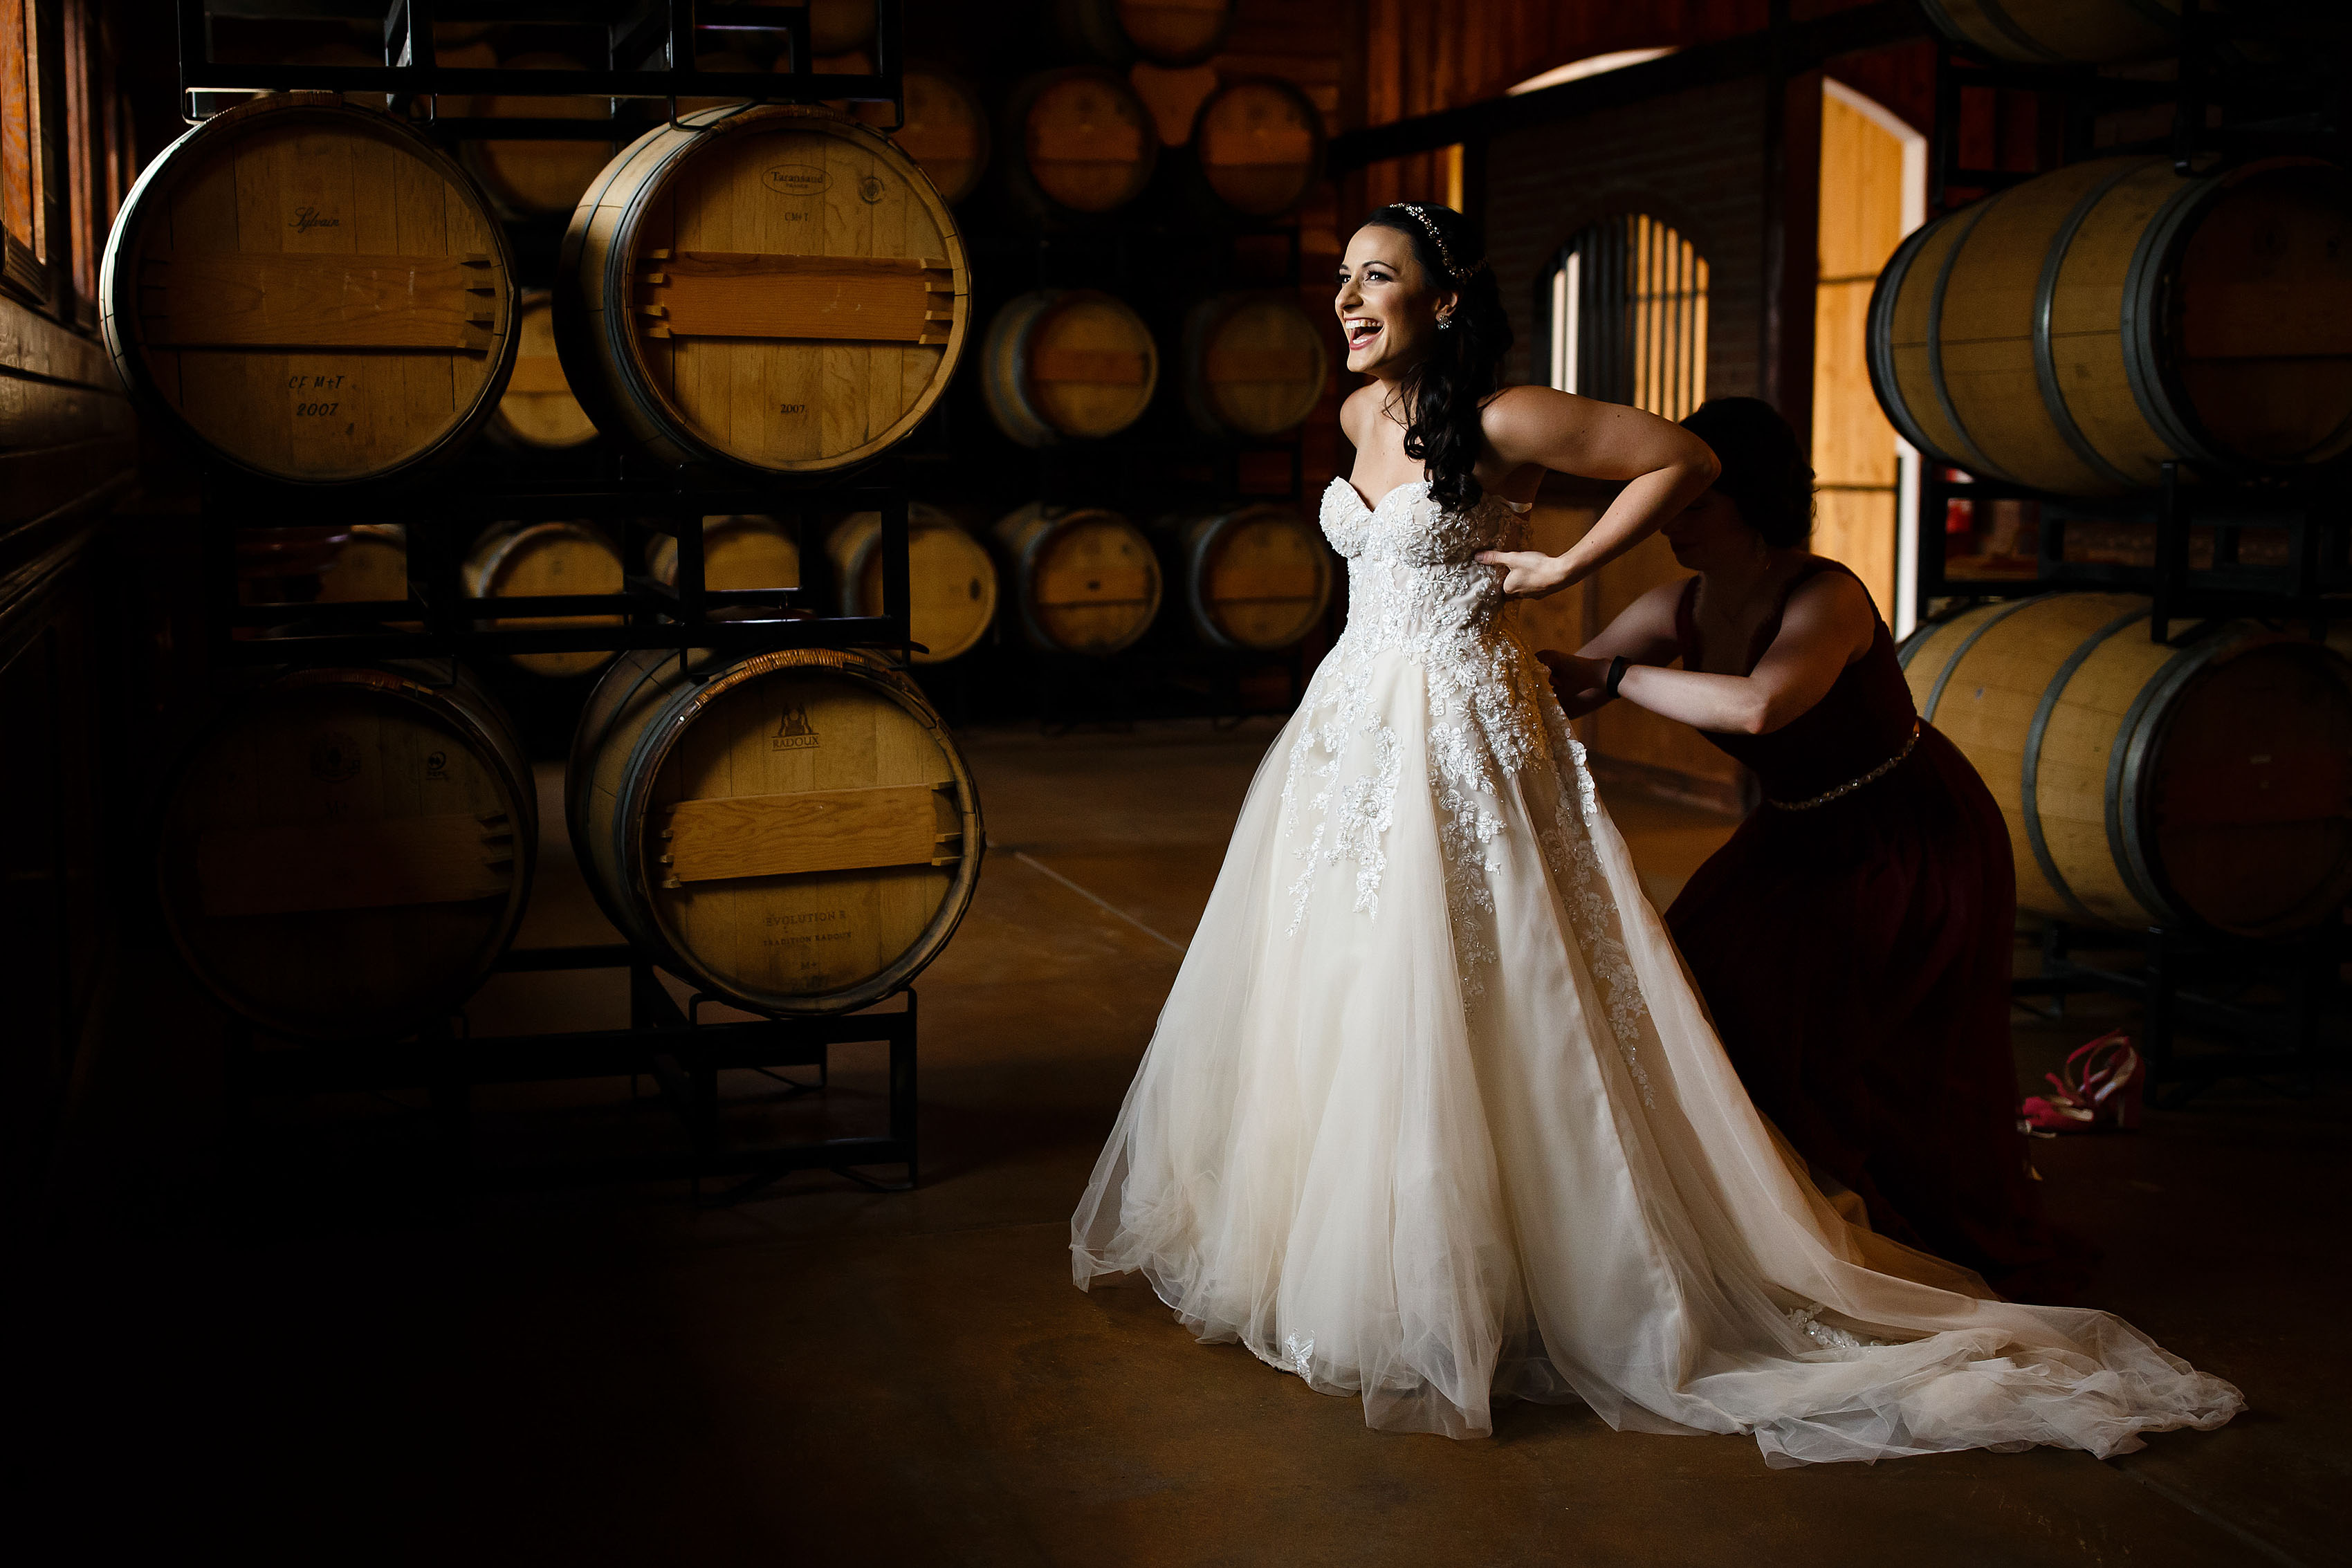 Bride puts on her dress in the barrell room at Crooked Willow Farms before her wedding